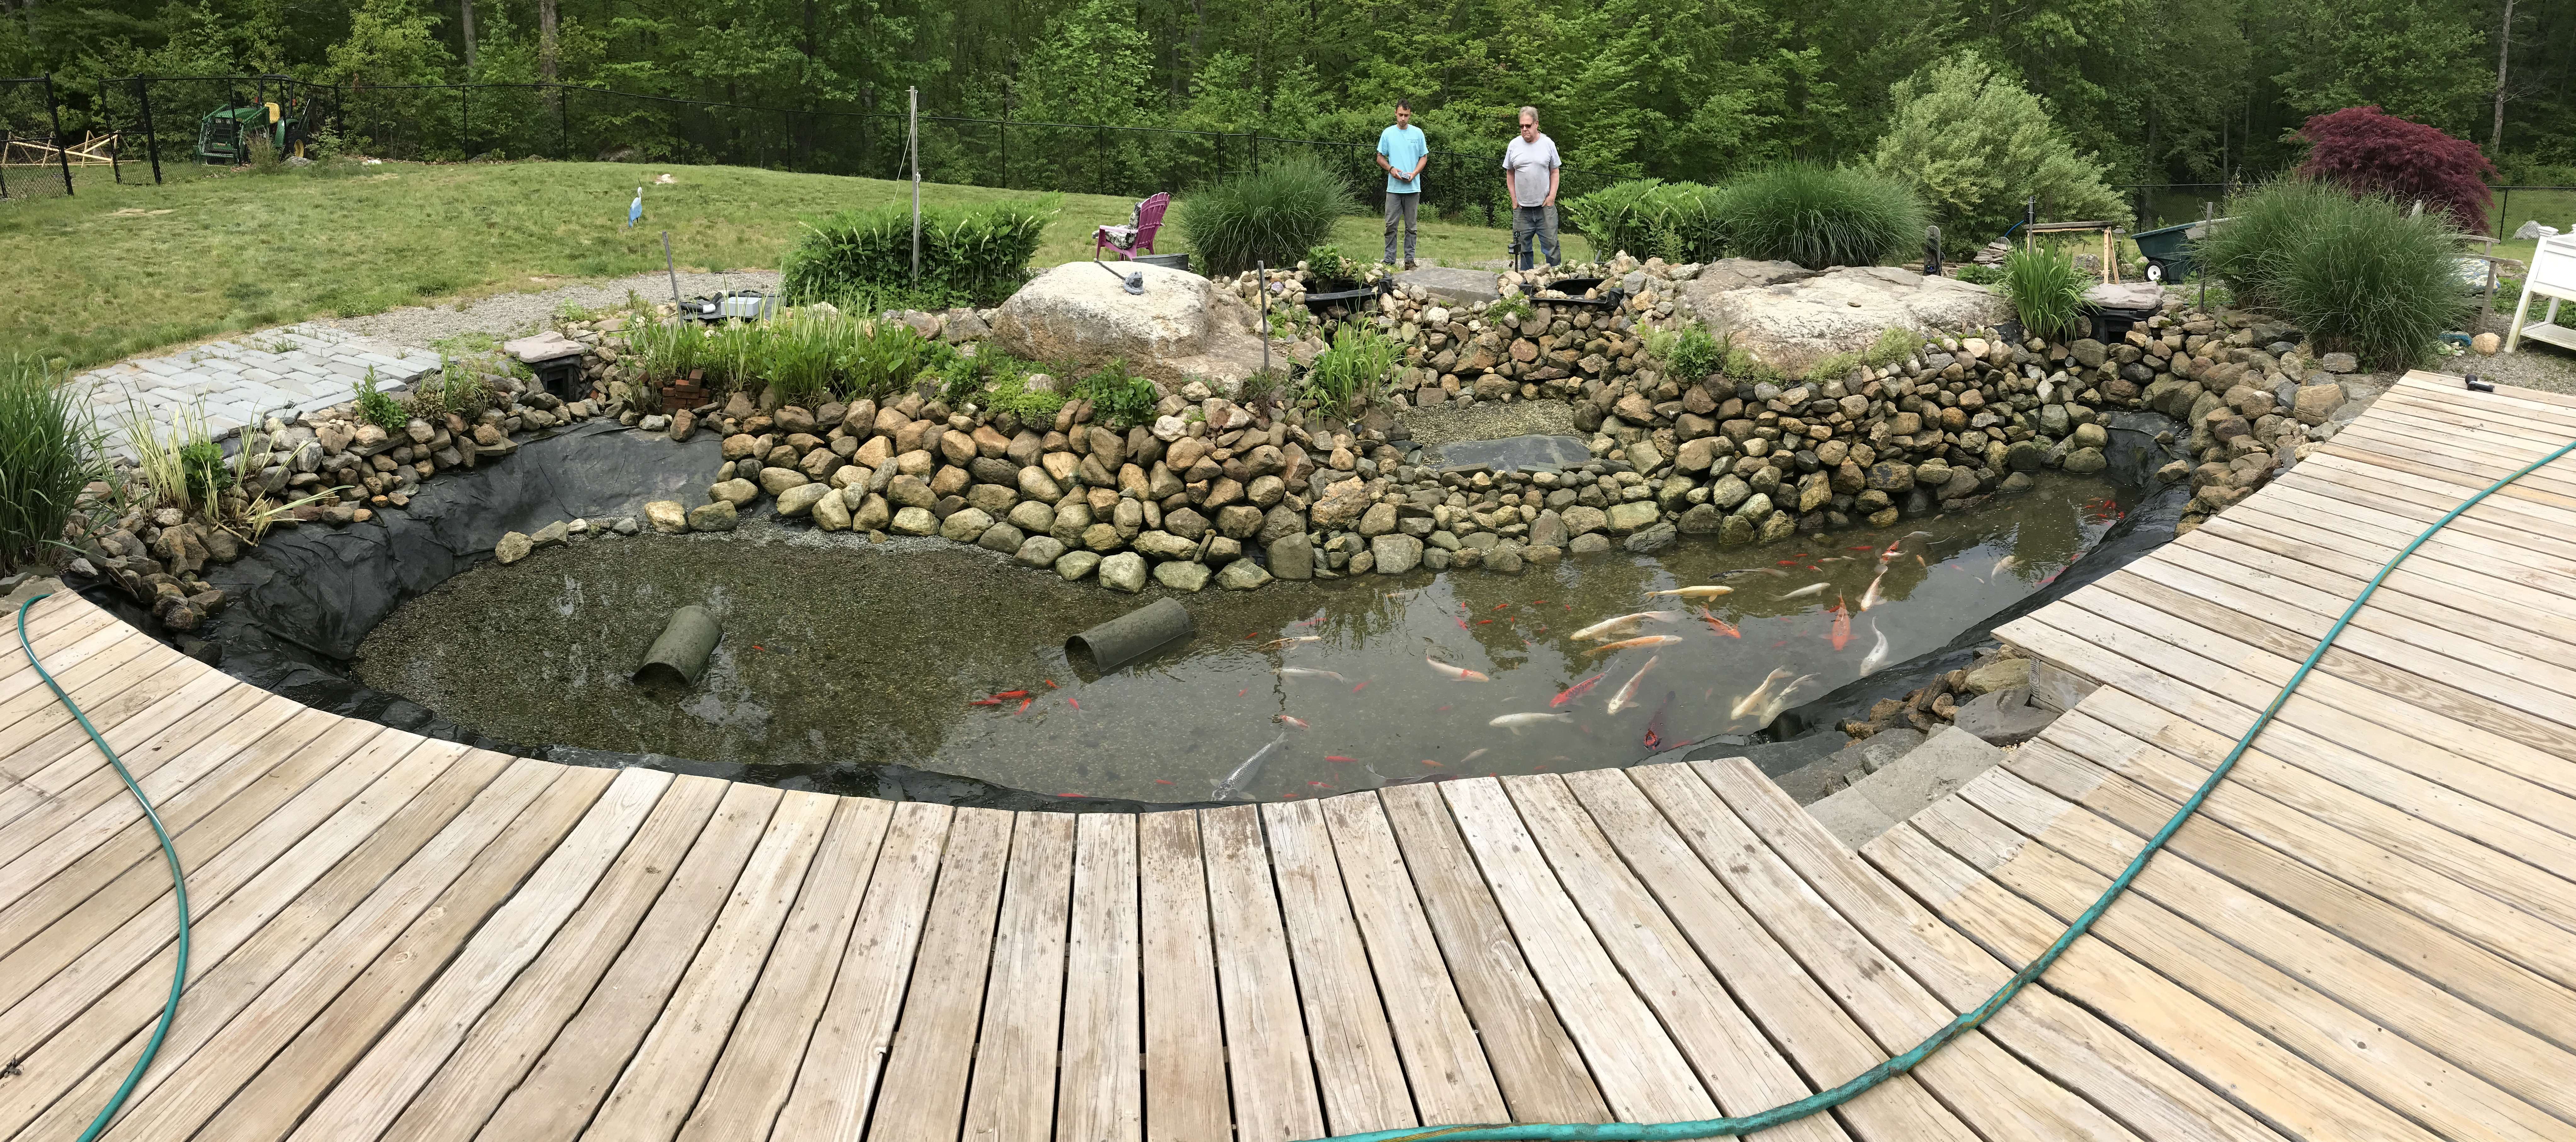 Pond Cleaning in East Haddam